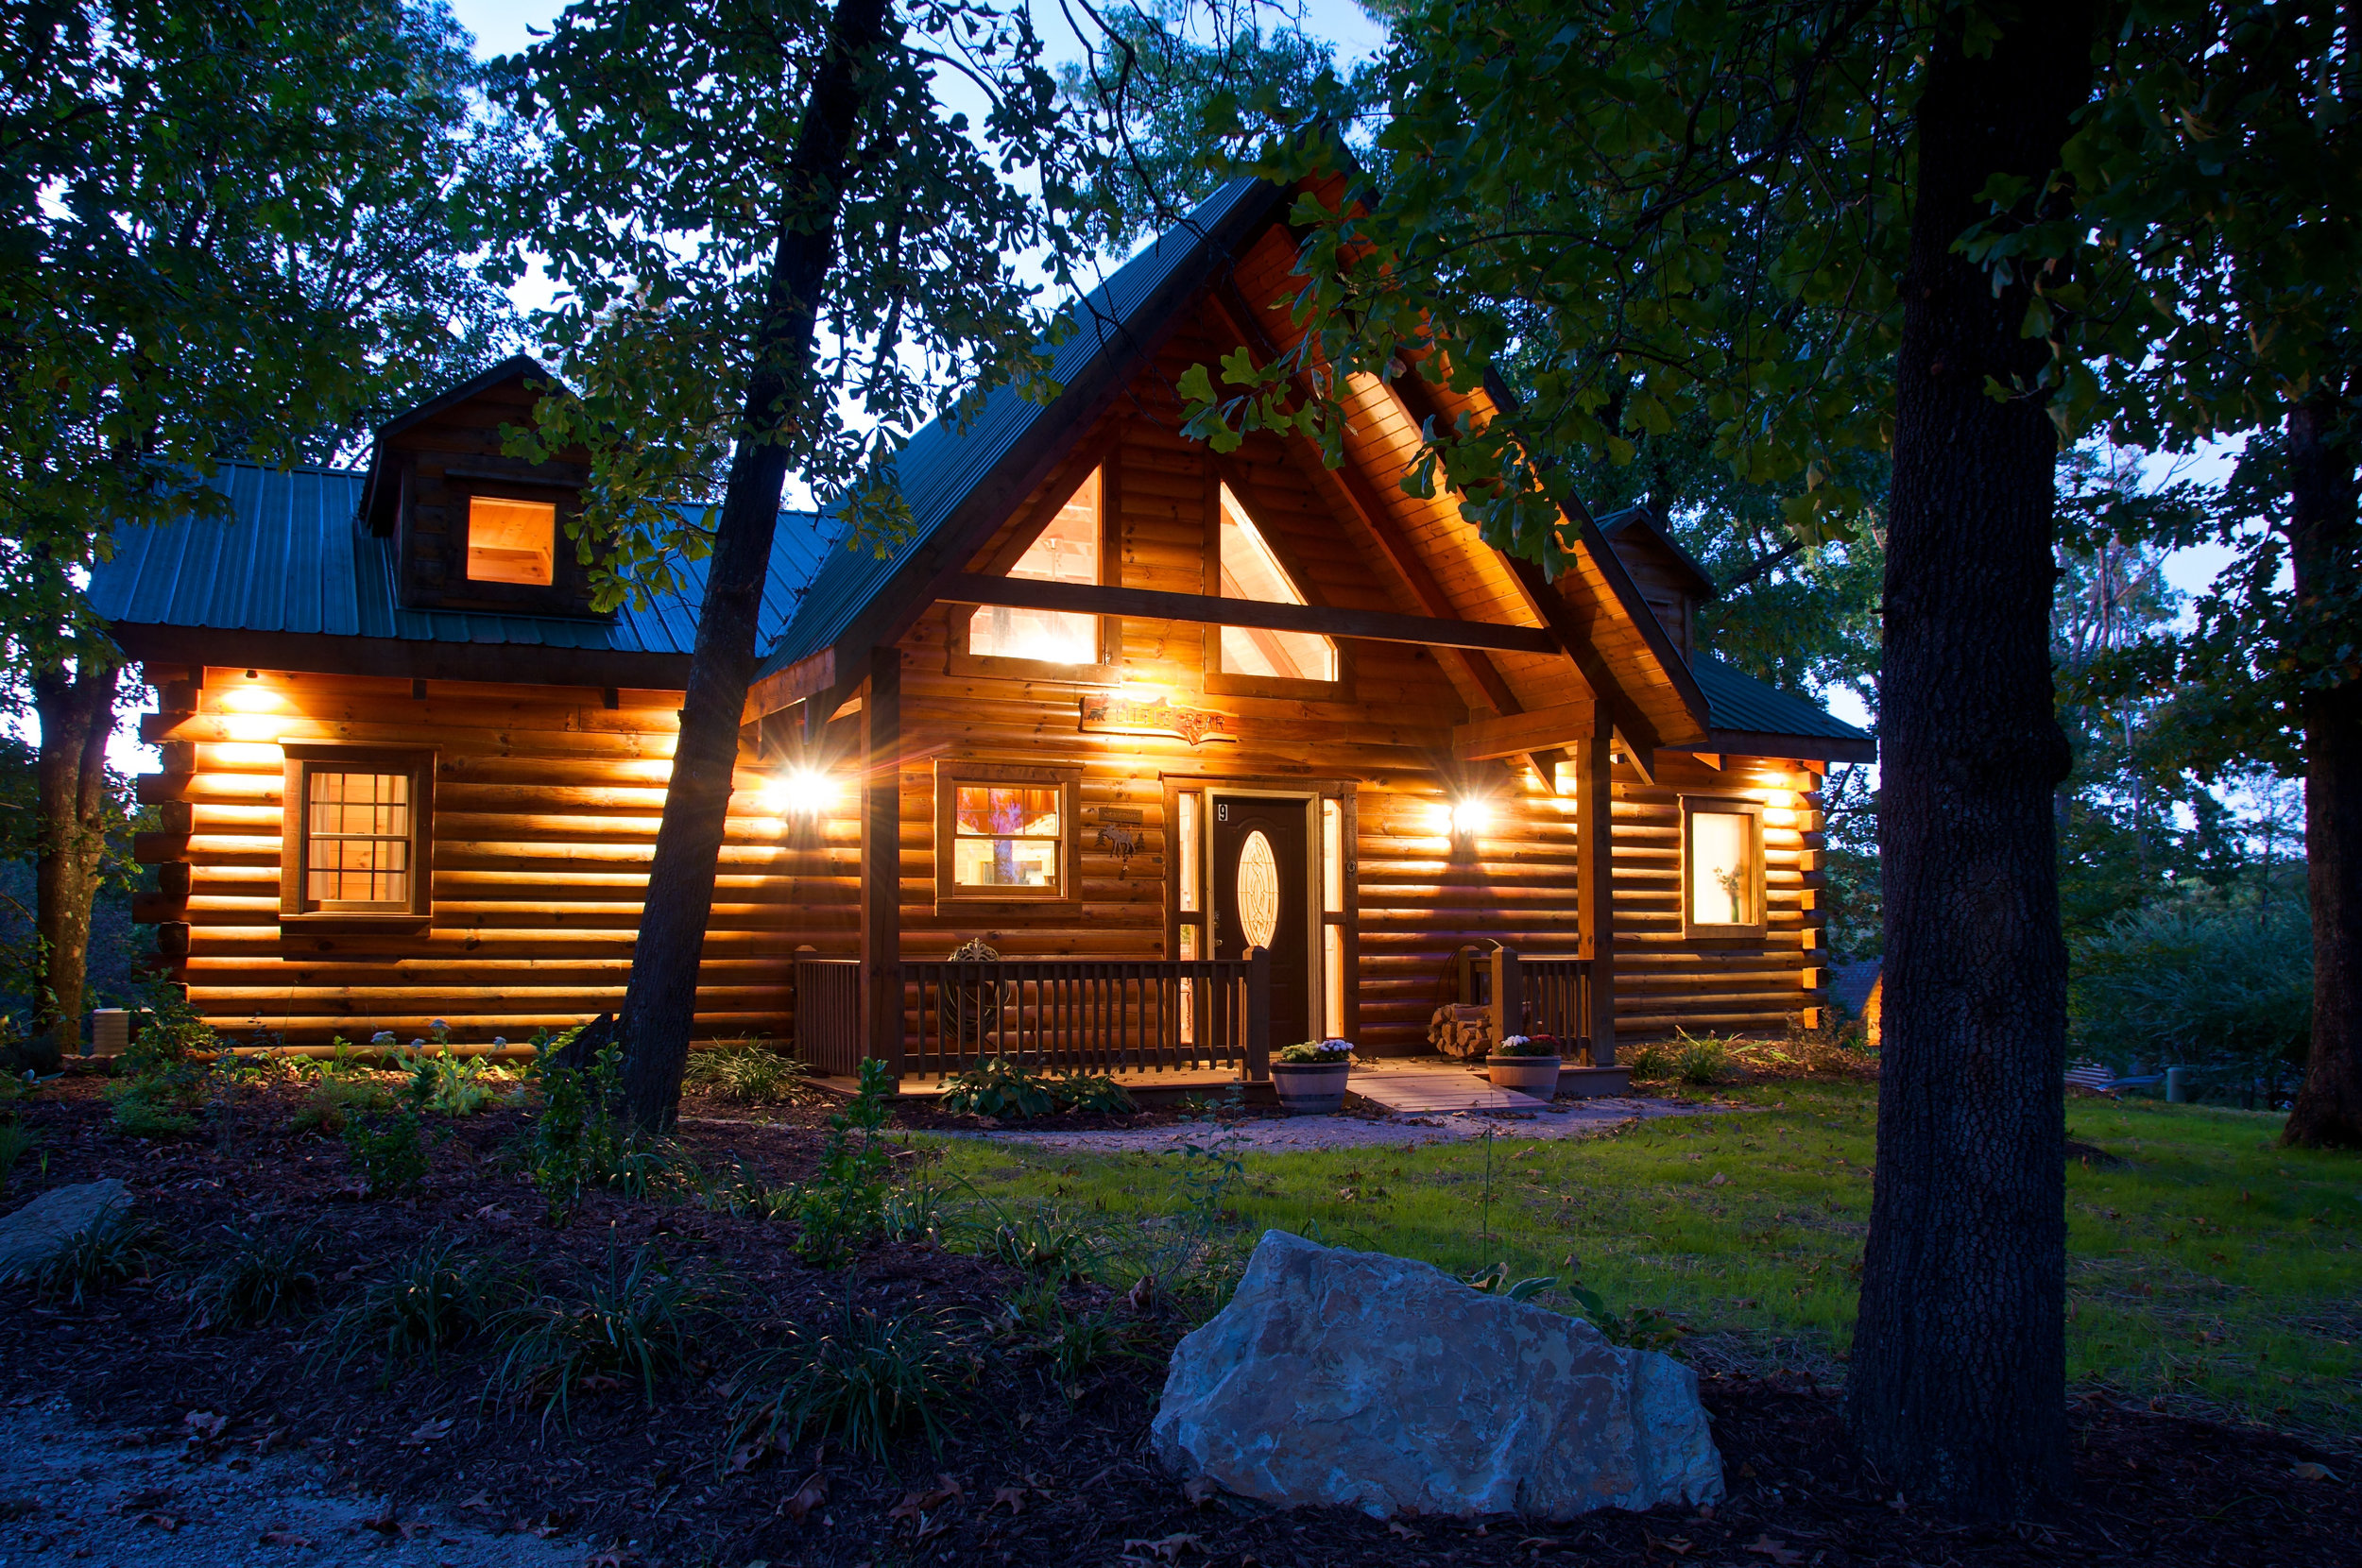 c lake rental mo branson cabins log of cody ozarks rentals dreams in s the cabin